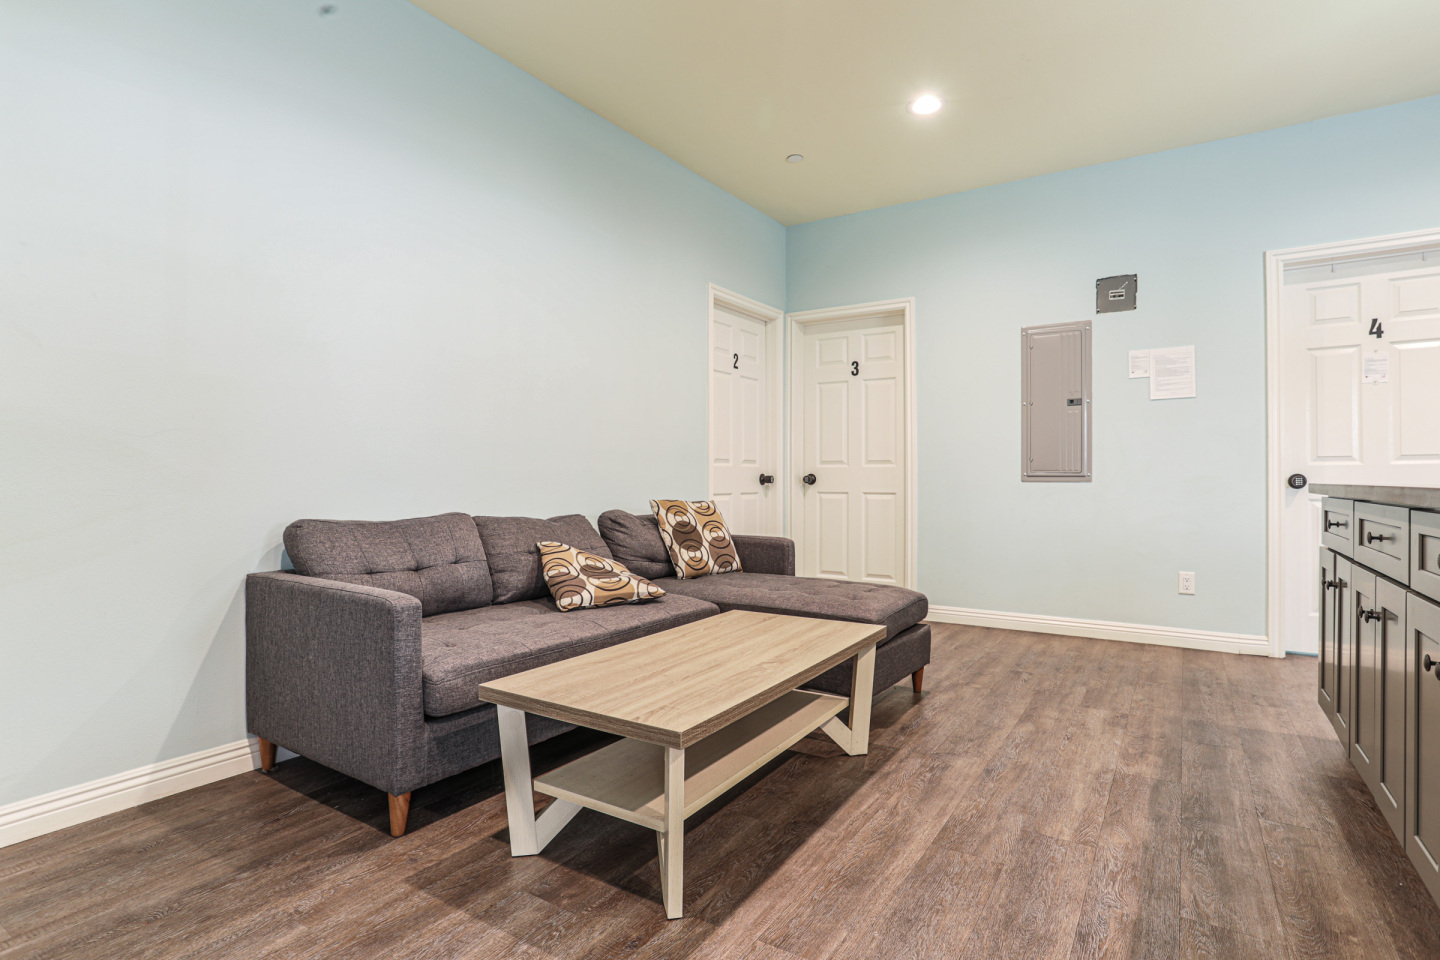 Grey Specked couch with abstract pillows in living room